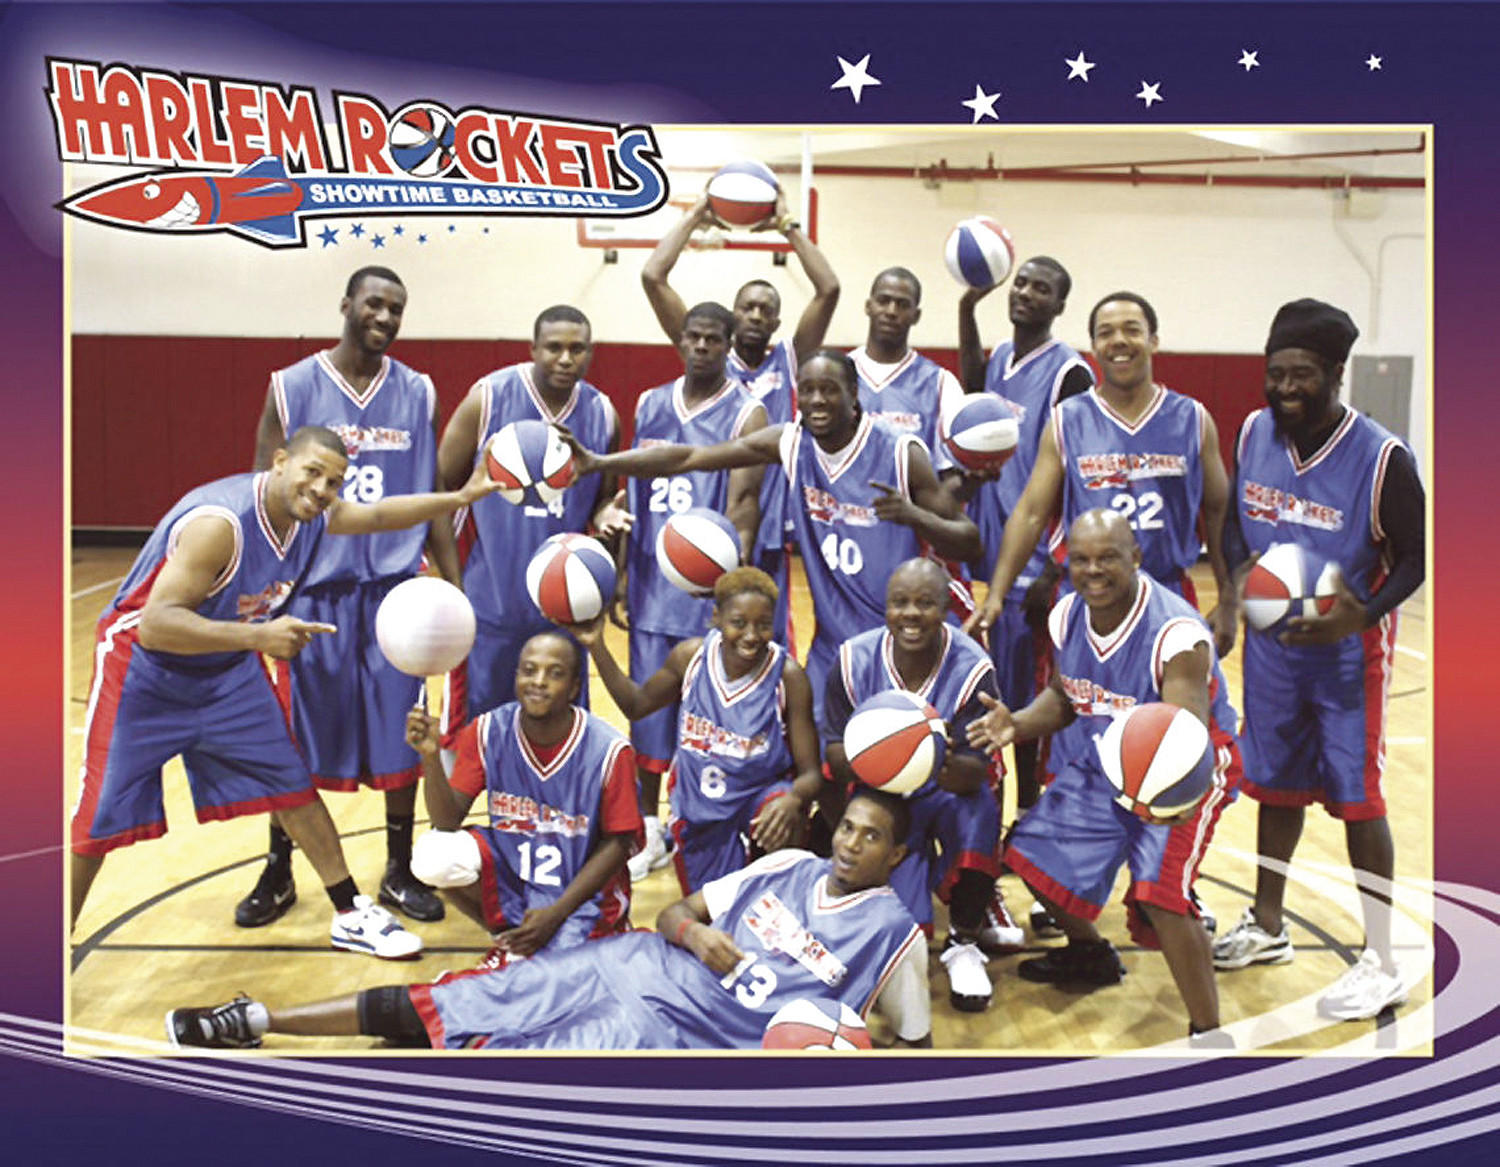 PHOTO PROVIDEDThe Harlem Rockets will perform at 6 p.m. Saturday at Lakewood High School, 305 Old Manning Road.